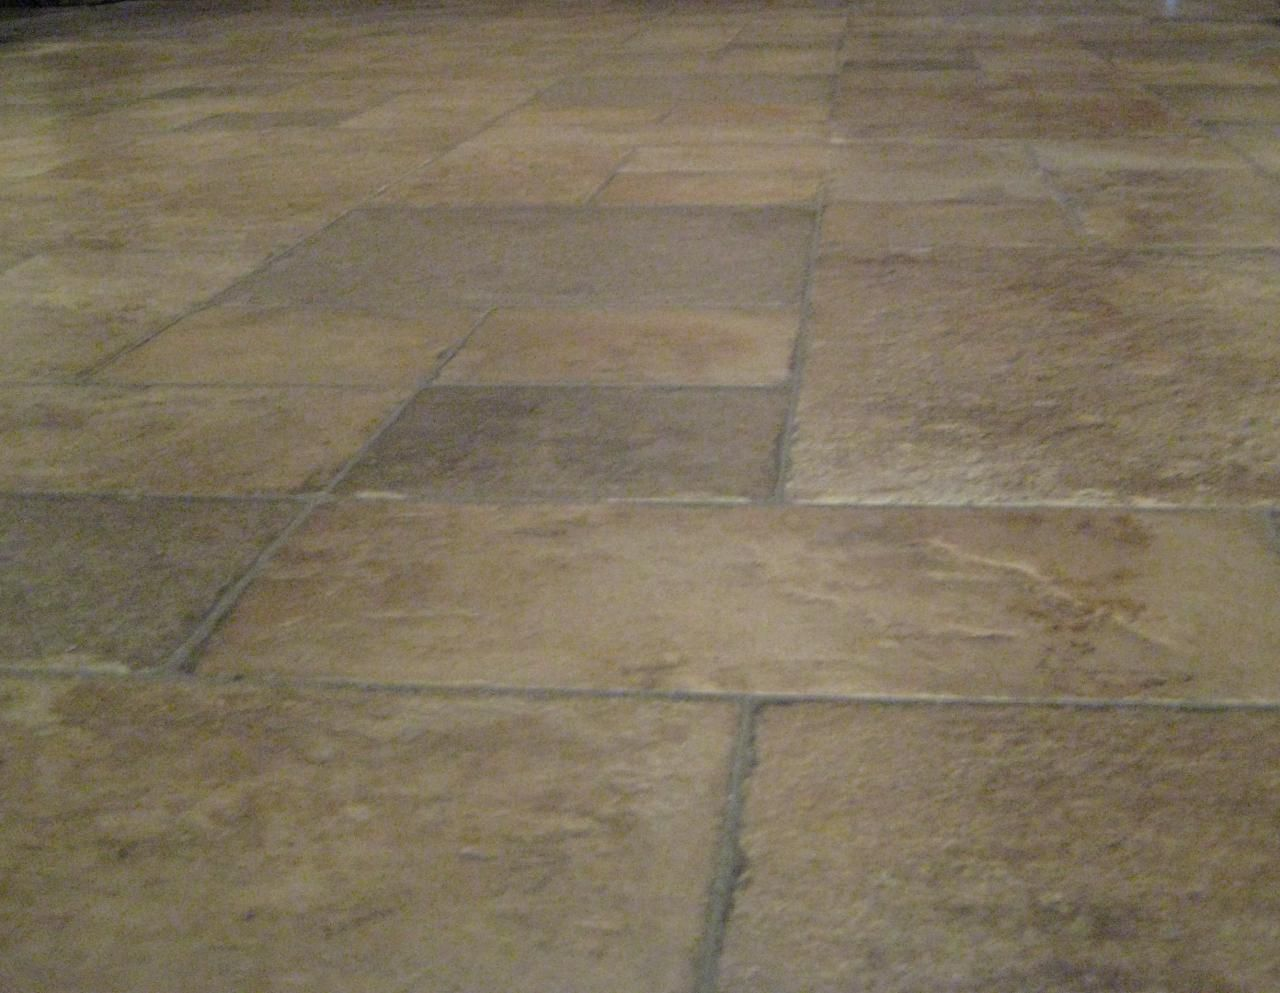 Indoor stone flooring tile floor tile patterns and designs tile that looks like stone floor decoration intended for dimensions 768 x 1024 auf laminate flooring looks like tile stone dailygadgetfo Image collections